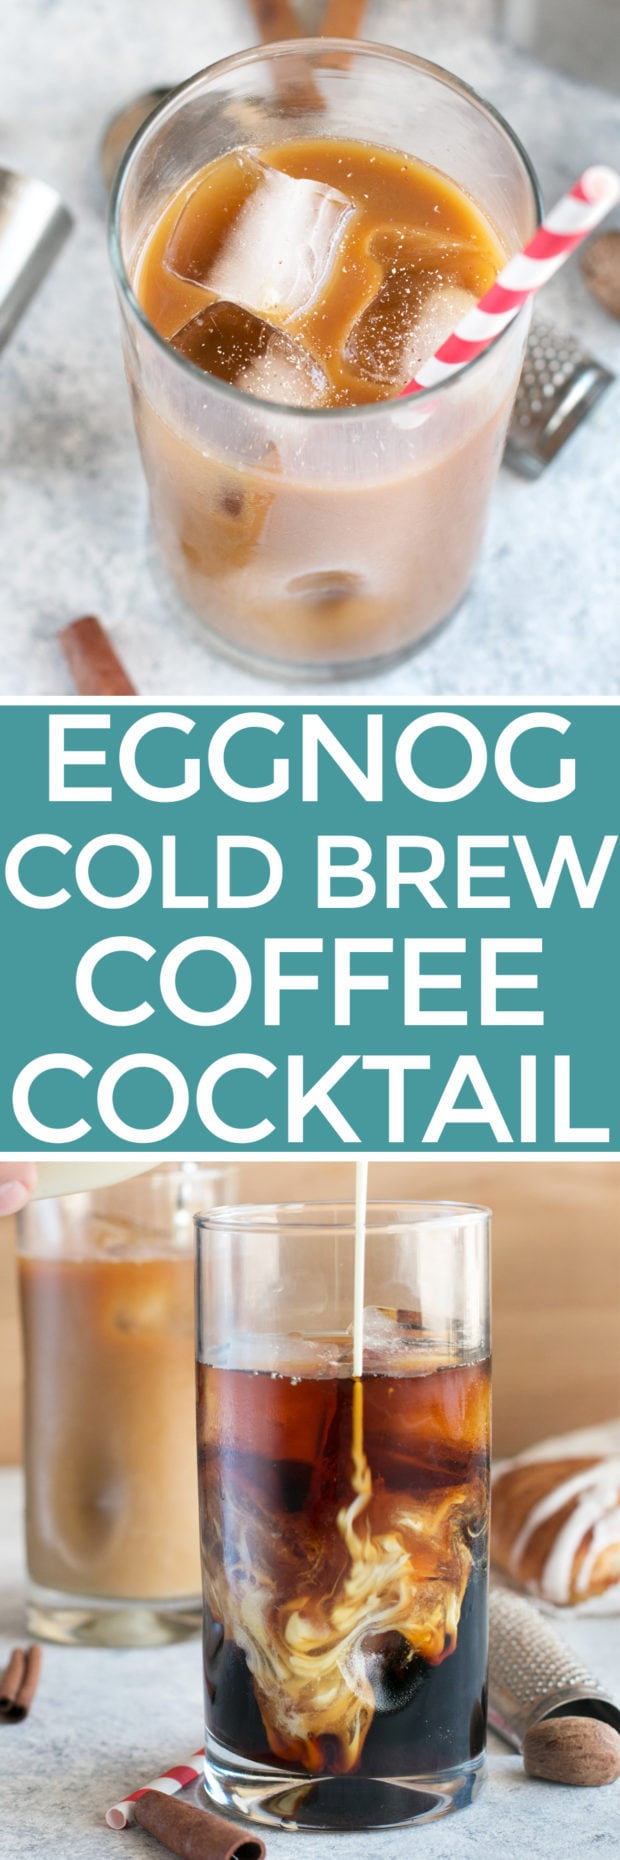 Eggnog Cold Brew Coffee Cocktail | cakenknife.com #cocktail #coffeecocktail #coldbrew #ad